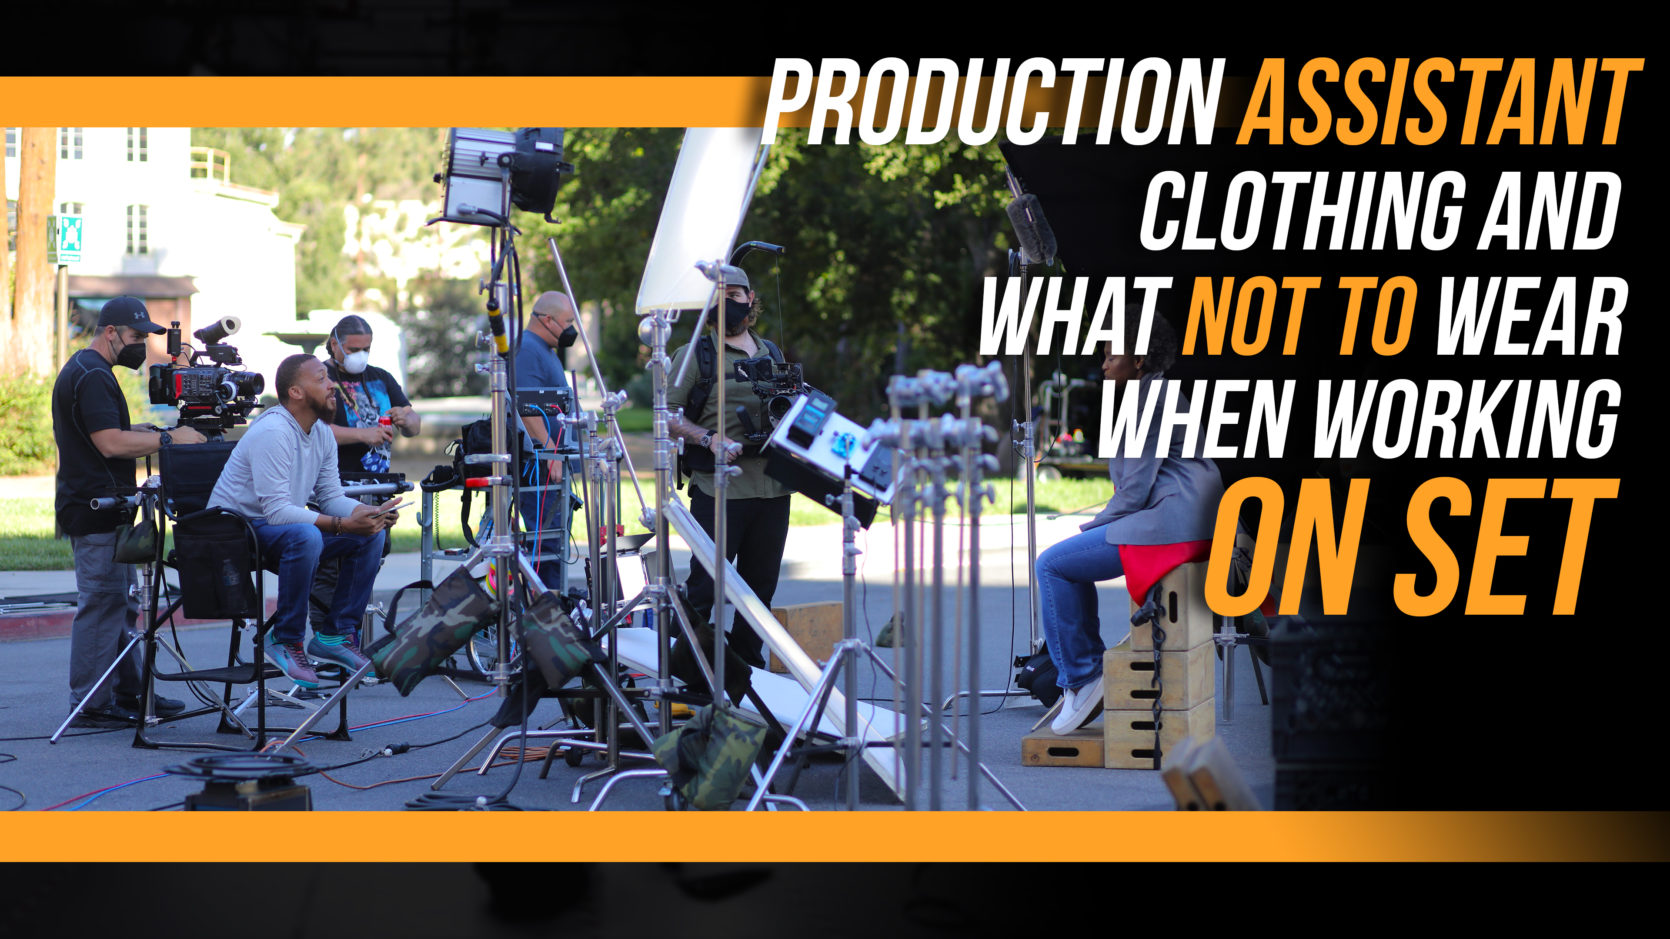 Production Assistant Clothing and What NOT to Wear when Working on the Set